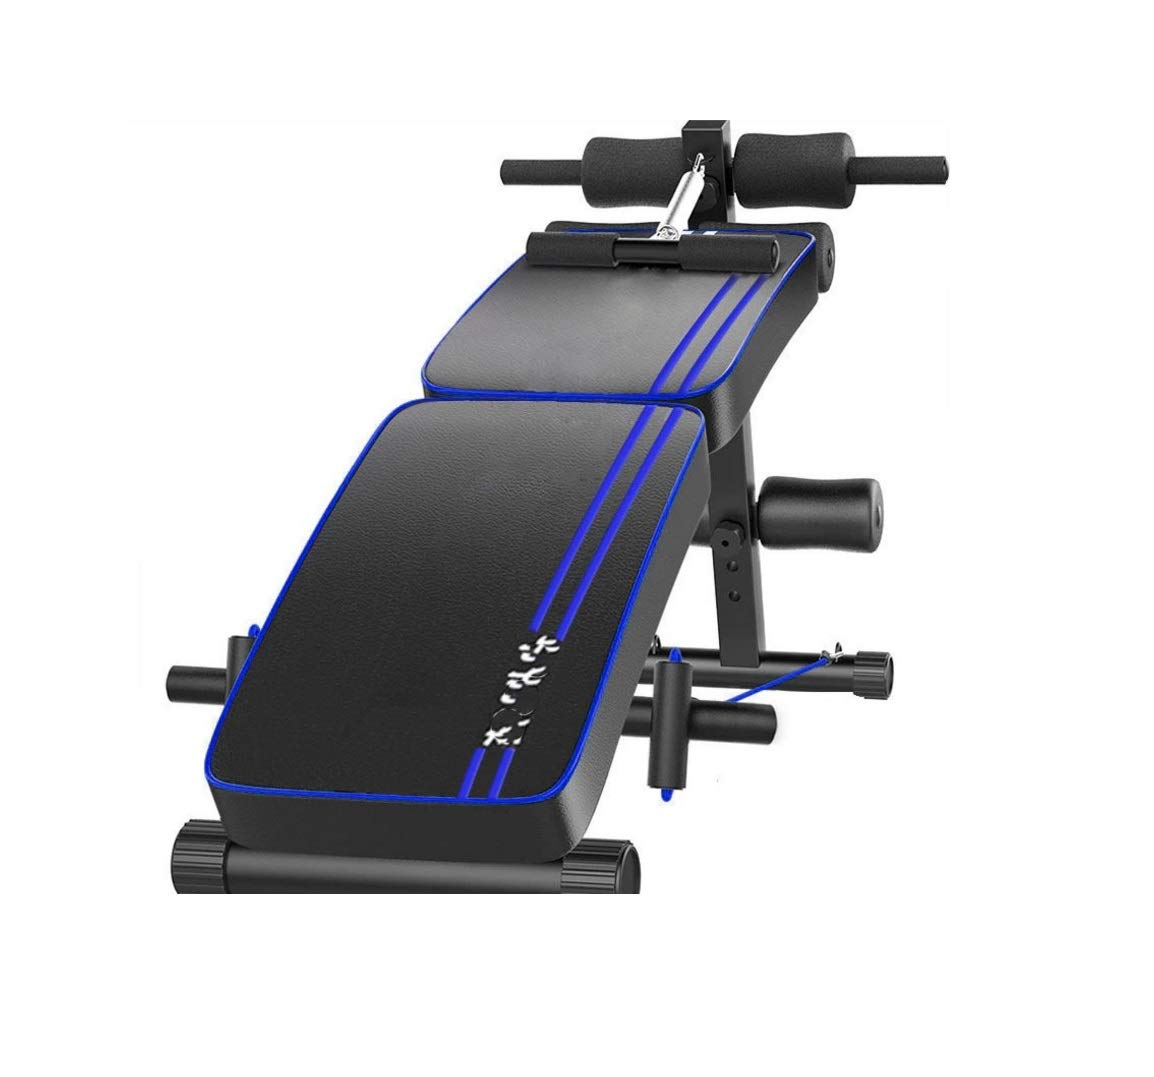 GaoMiTA Supine Board Double Folding Safety and Comfort Home Multi-Function Board Men and Women Reduce Abdominal Abdomen Fitness Equipment